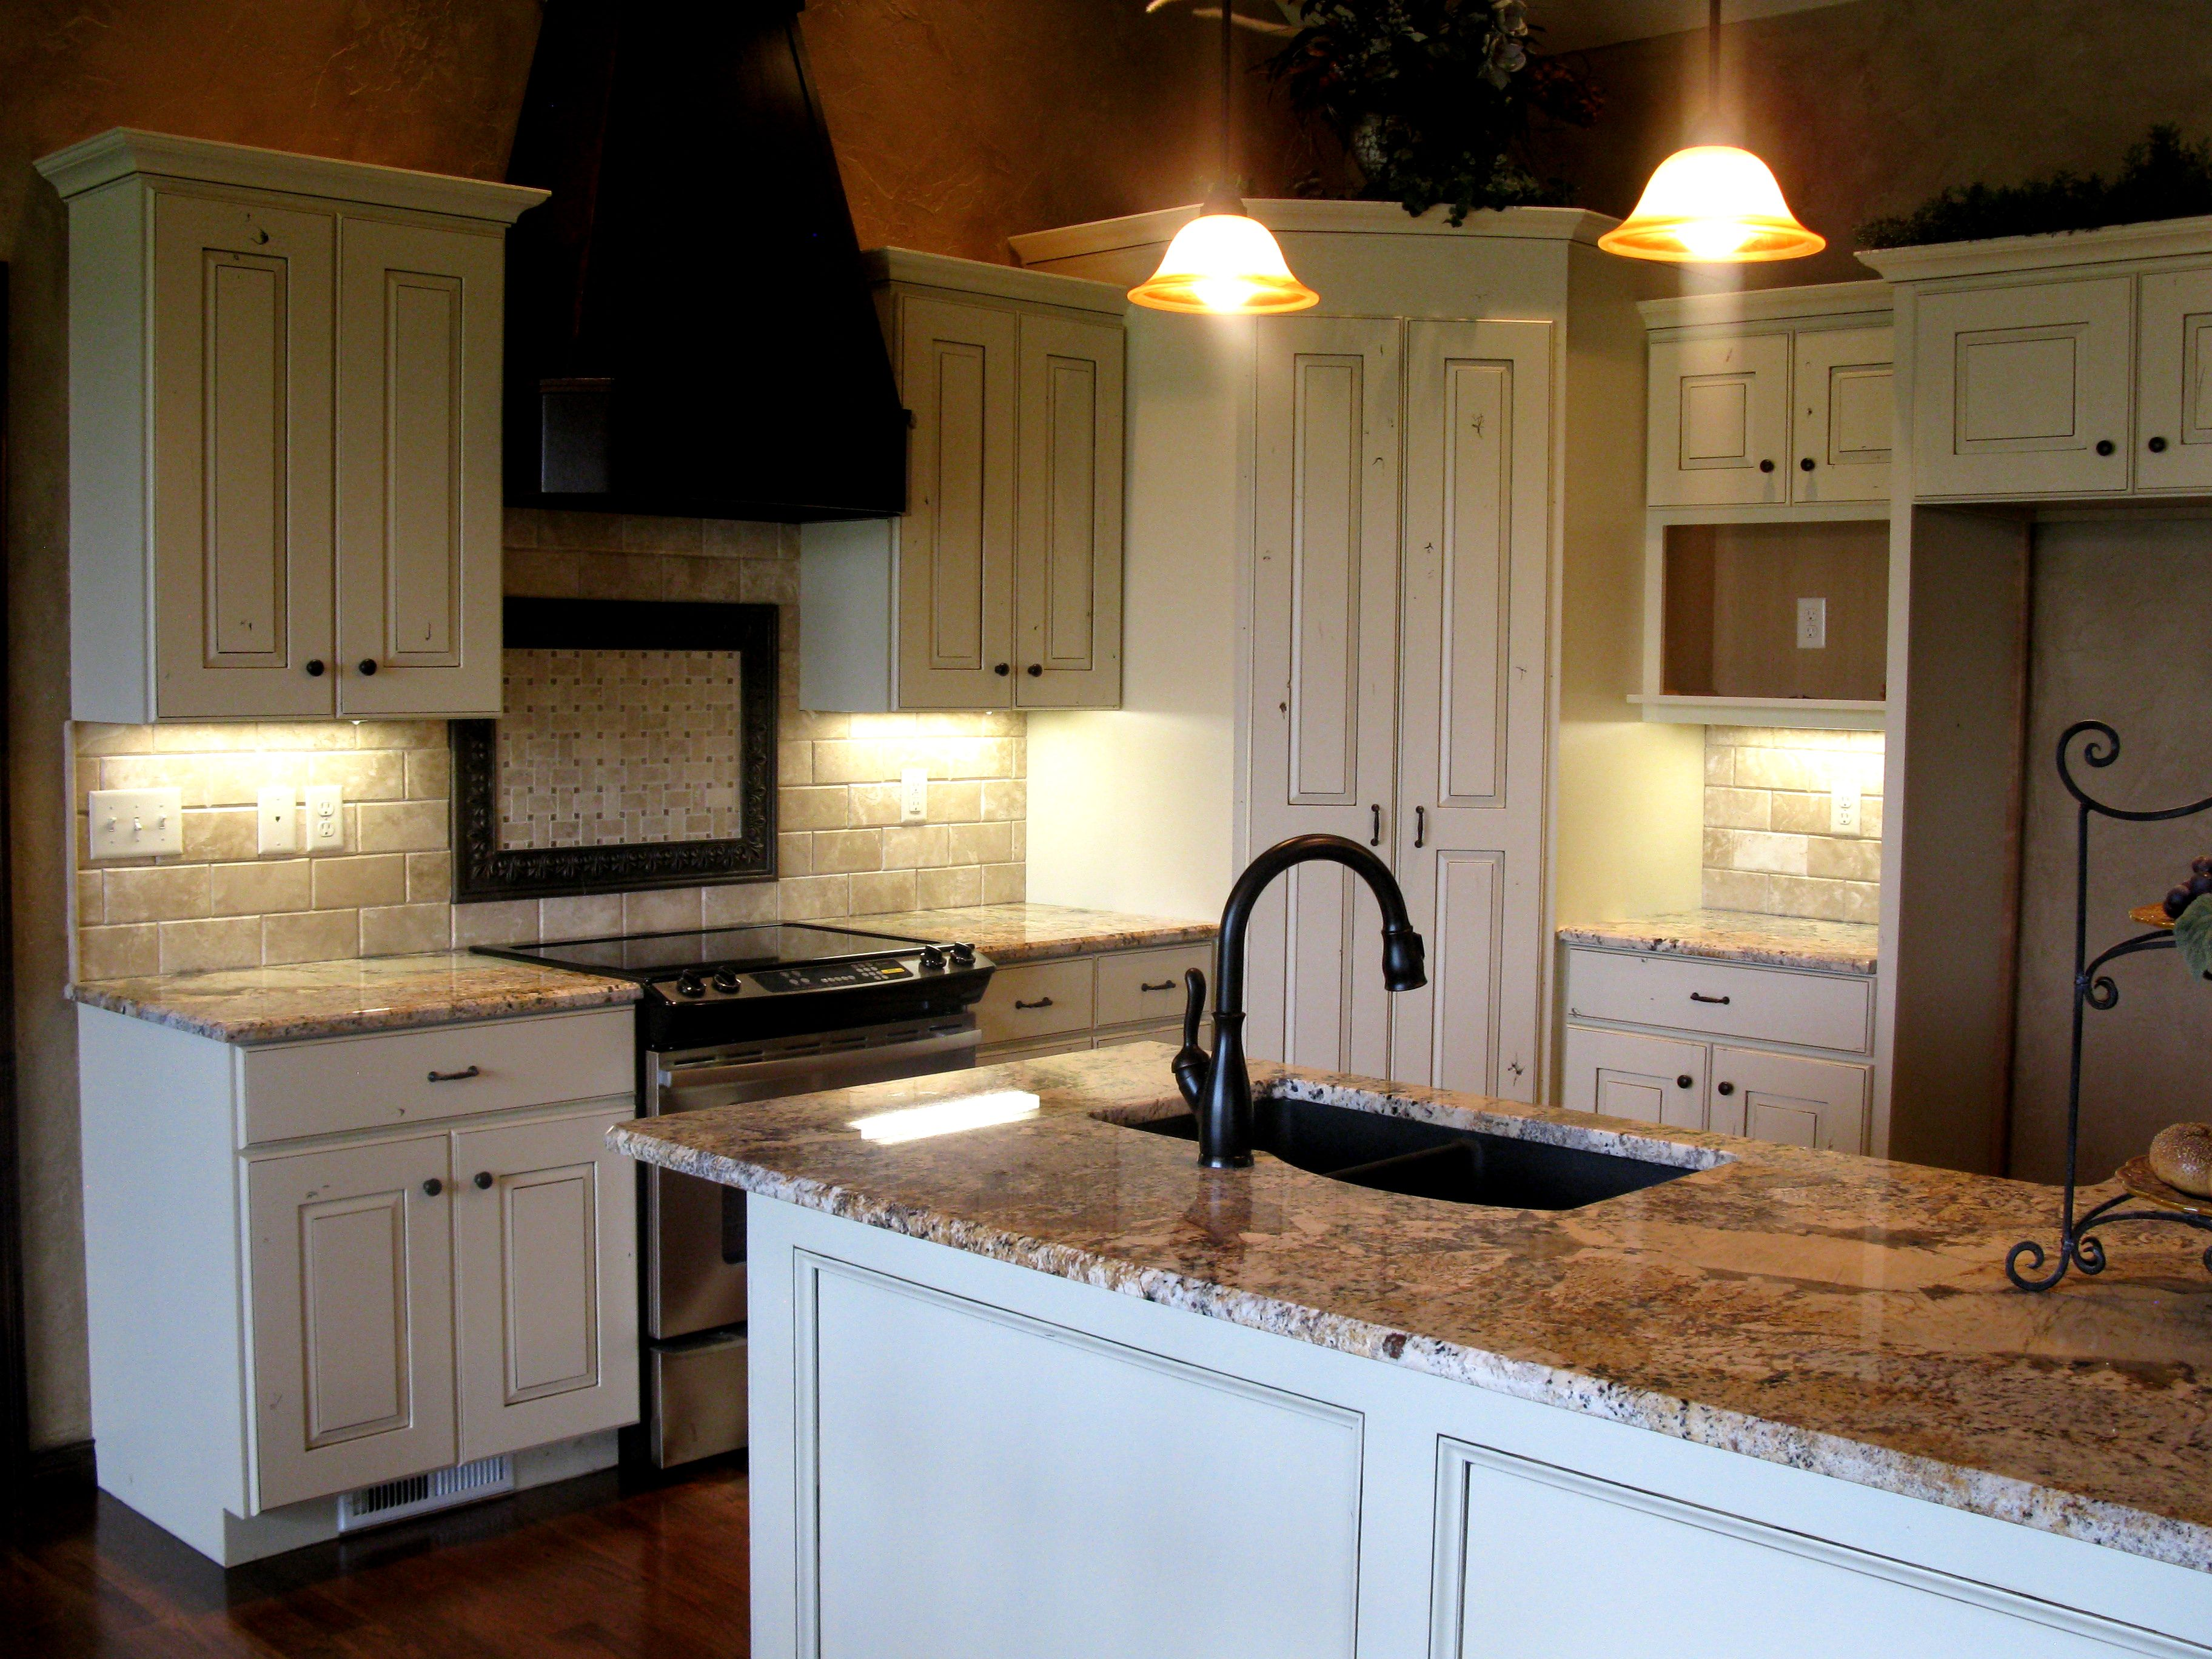 Craig Sharp Homes Did A Great Job With This Kitchen